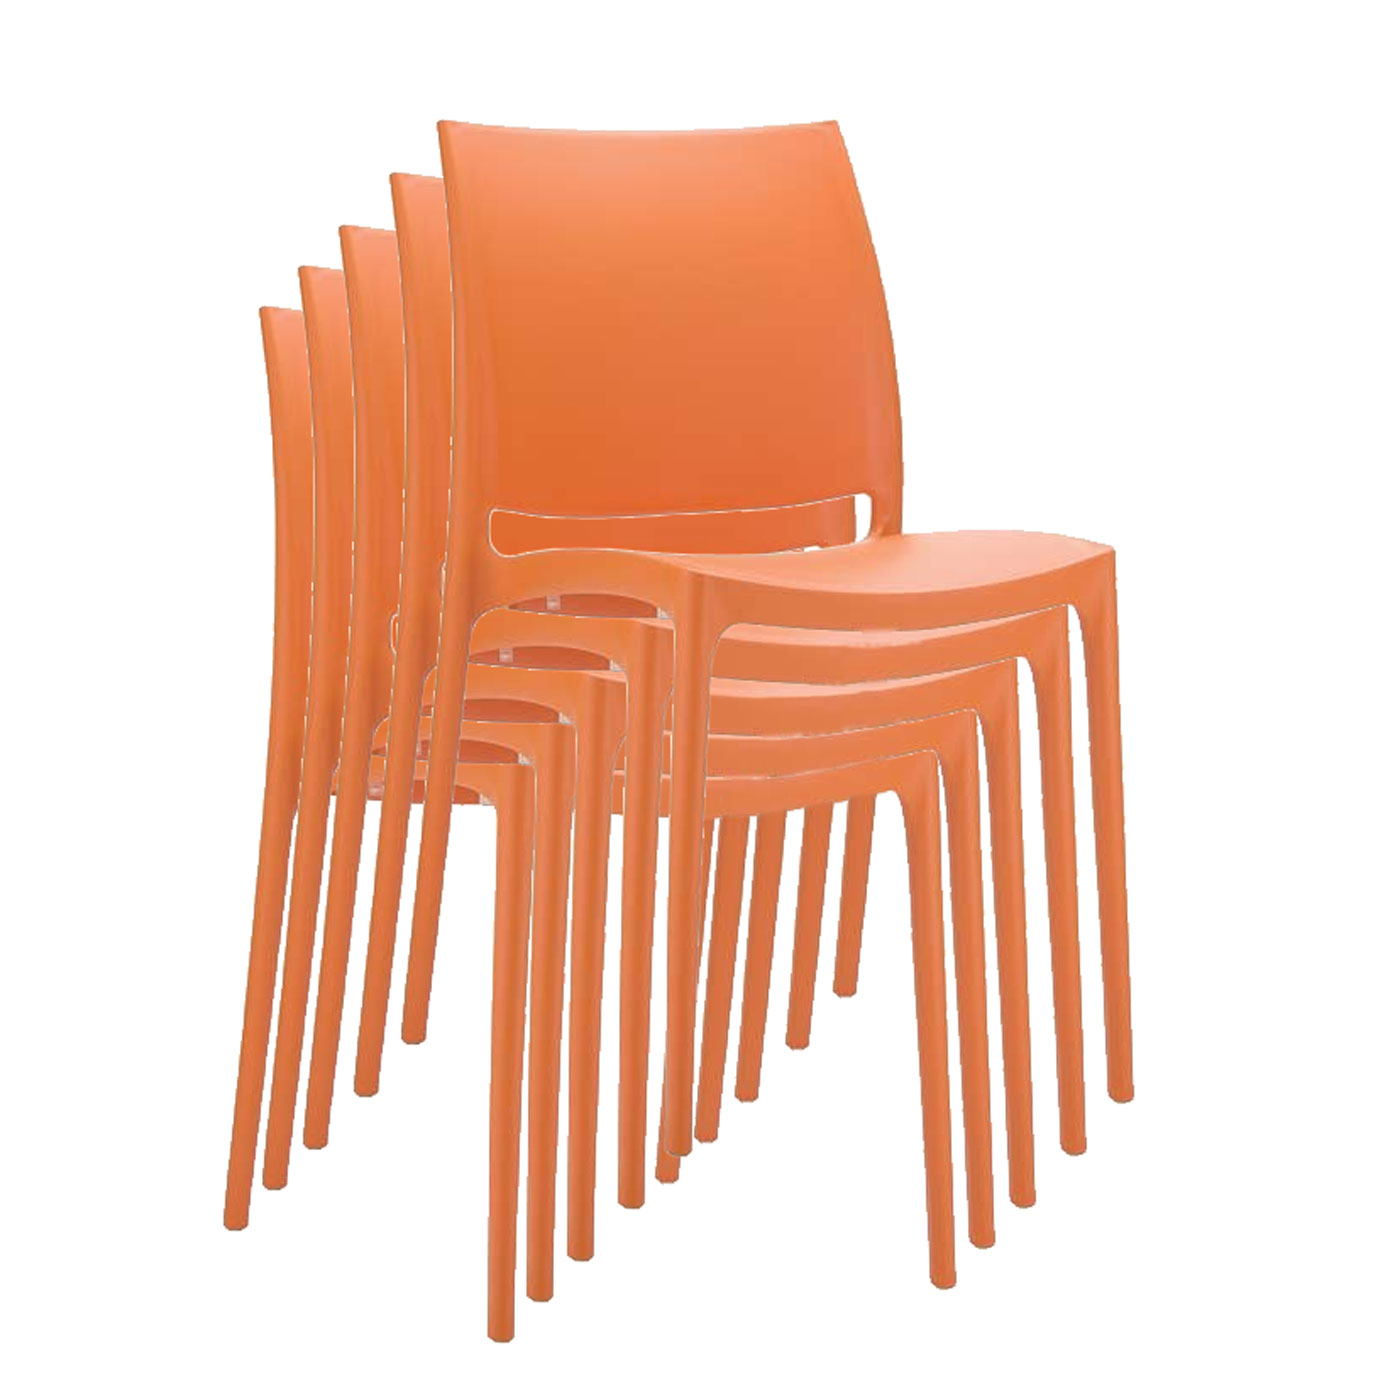 stapelstuhl bistrostuhl gartenstuhl kunststoff c44 orange. Black Bedroom Furniture Sets. Home Design Ideas